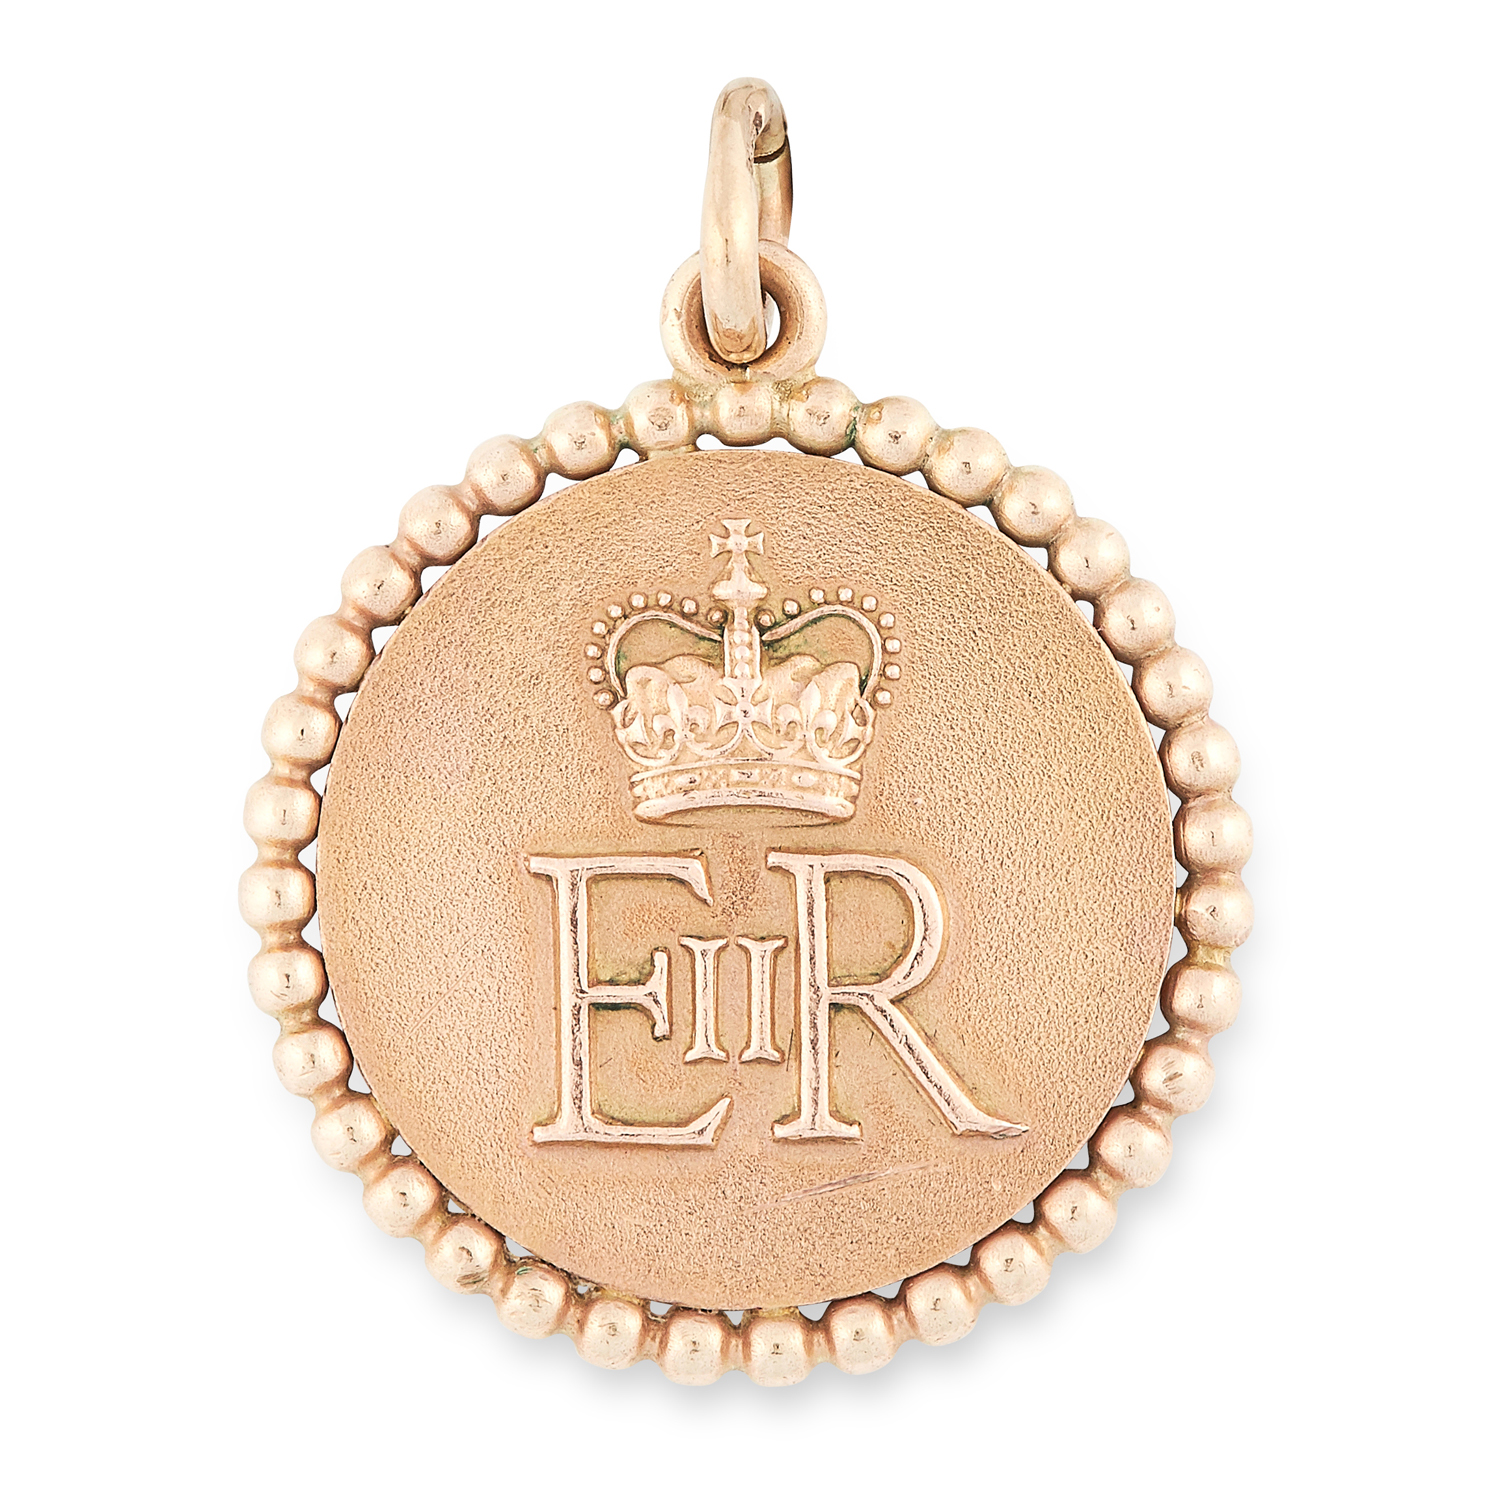 Los 226 - A ROYAL GOLD MEDALLION, CARTIER 1955 in 9ct yellow gold, with the royal cipher of Queen Elizabeth